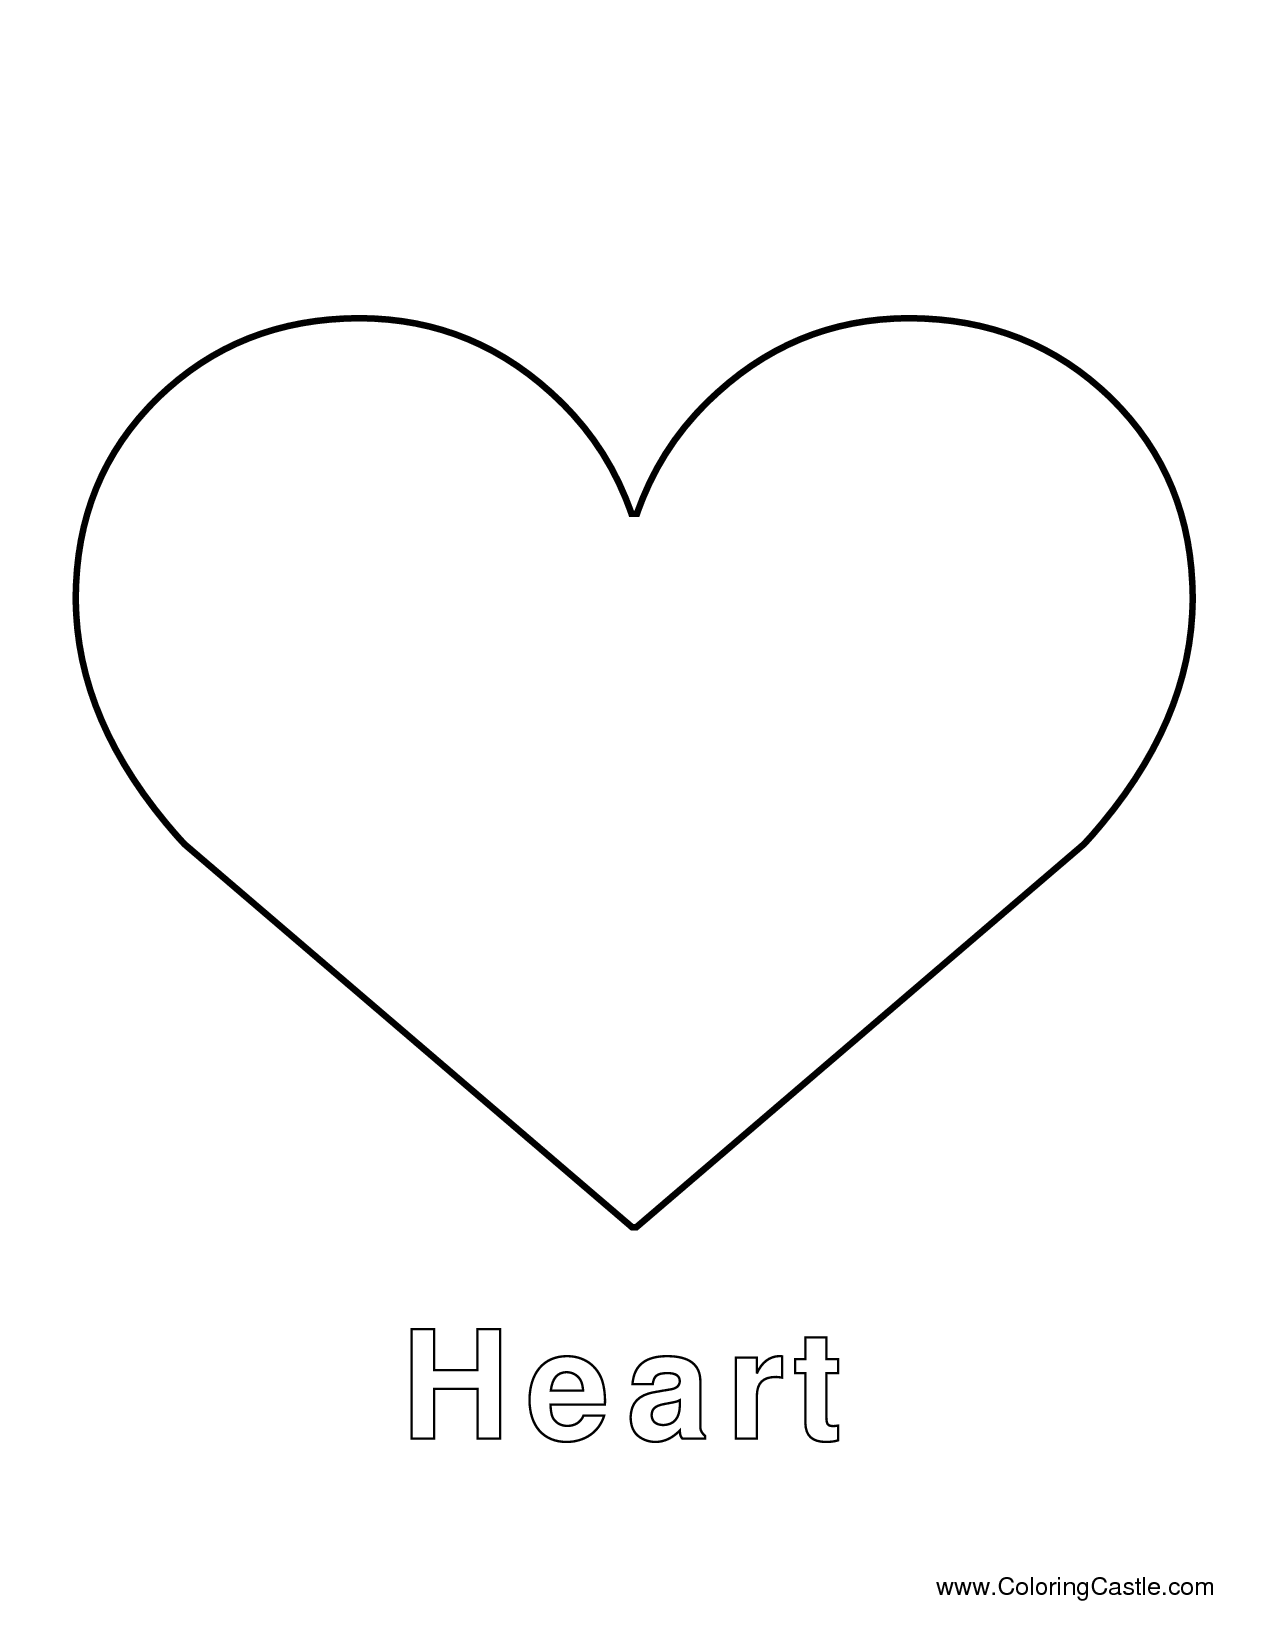 7 Images of Heart Shape Template Printable